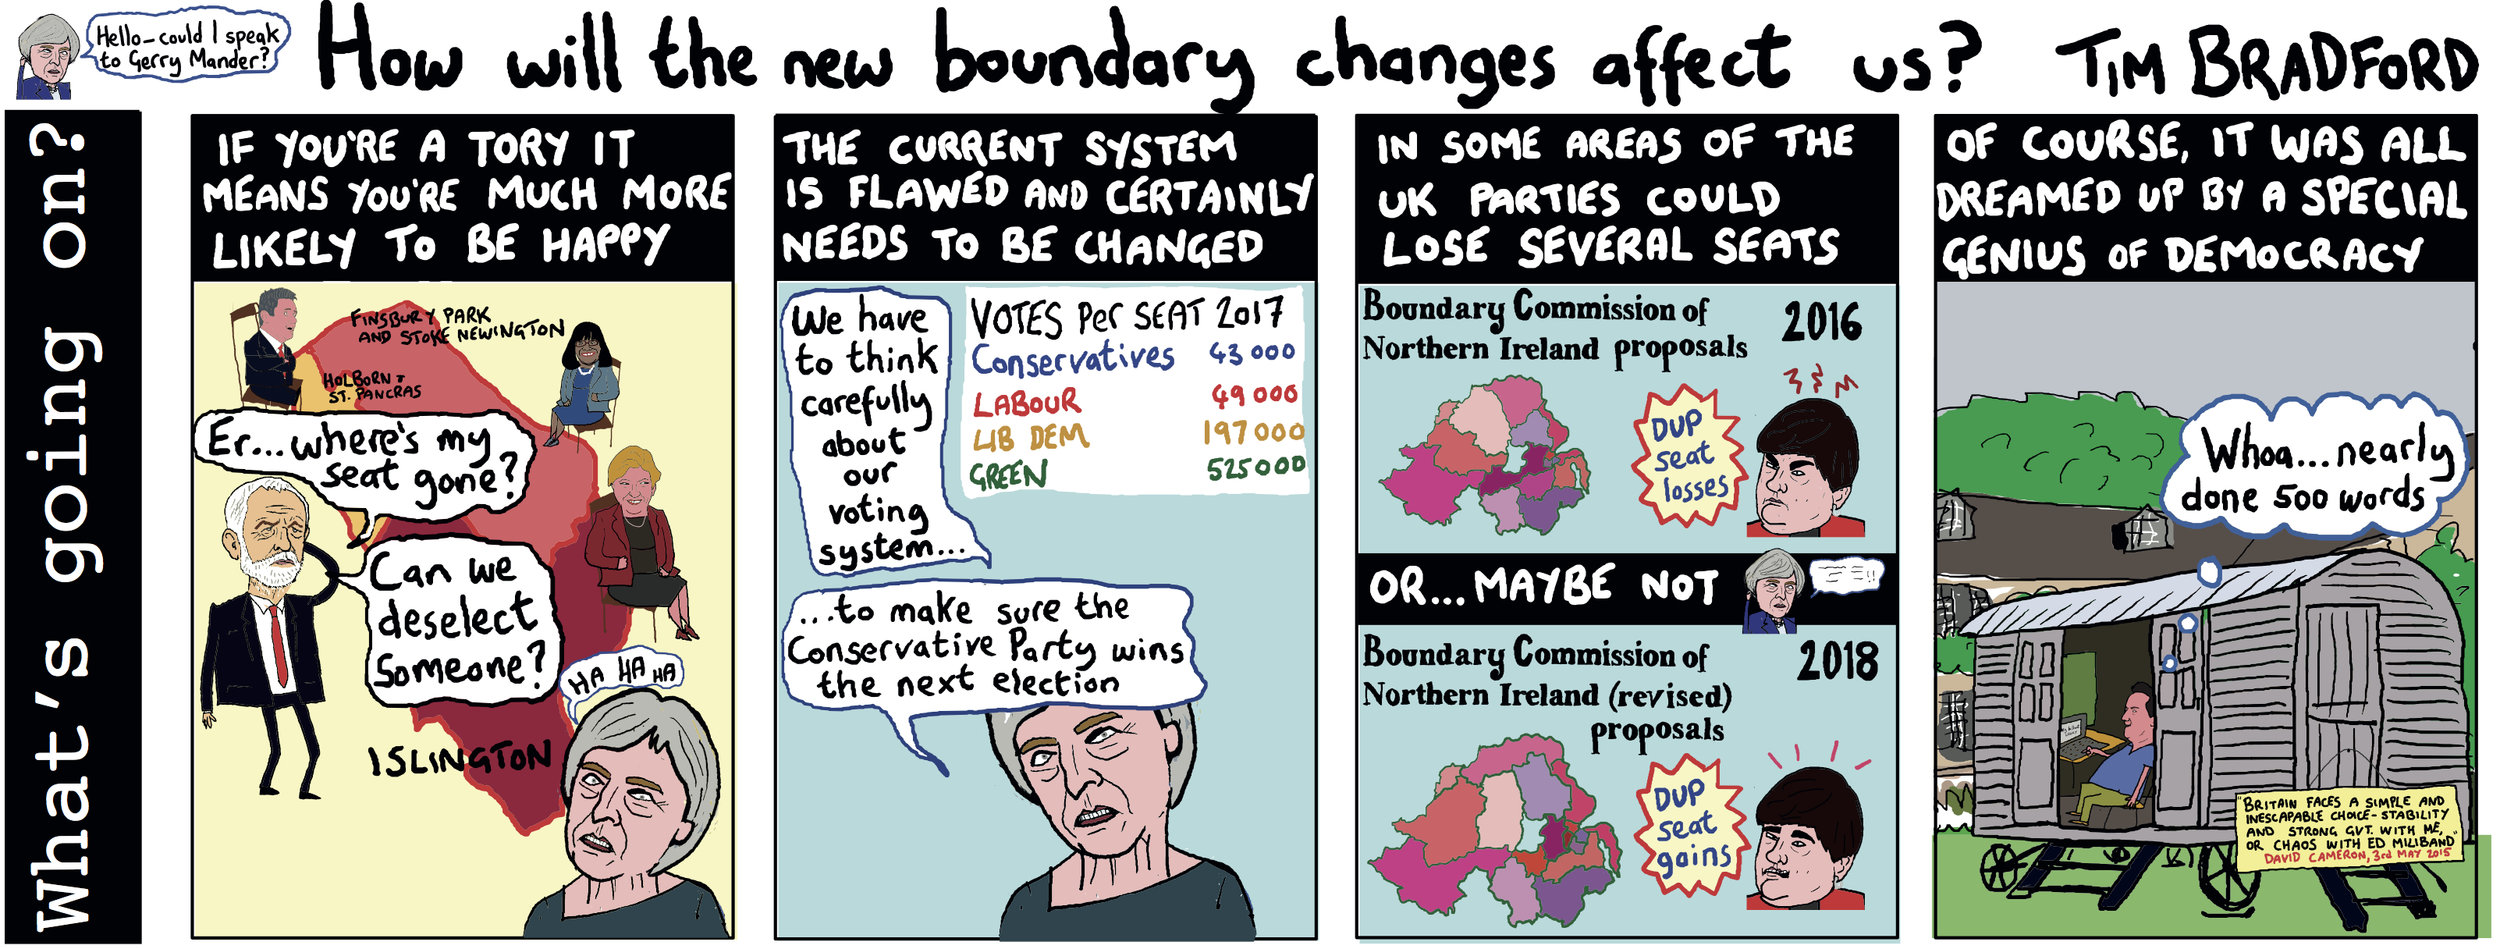 How will the new boundary changes affect us? - 12/09/18